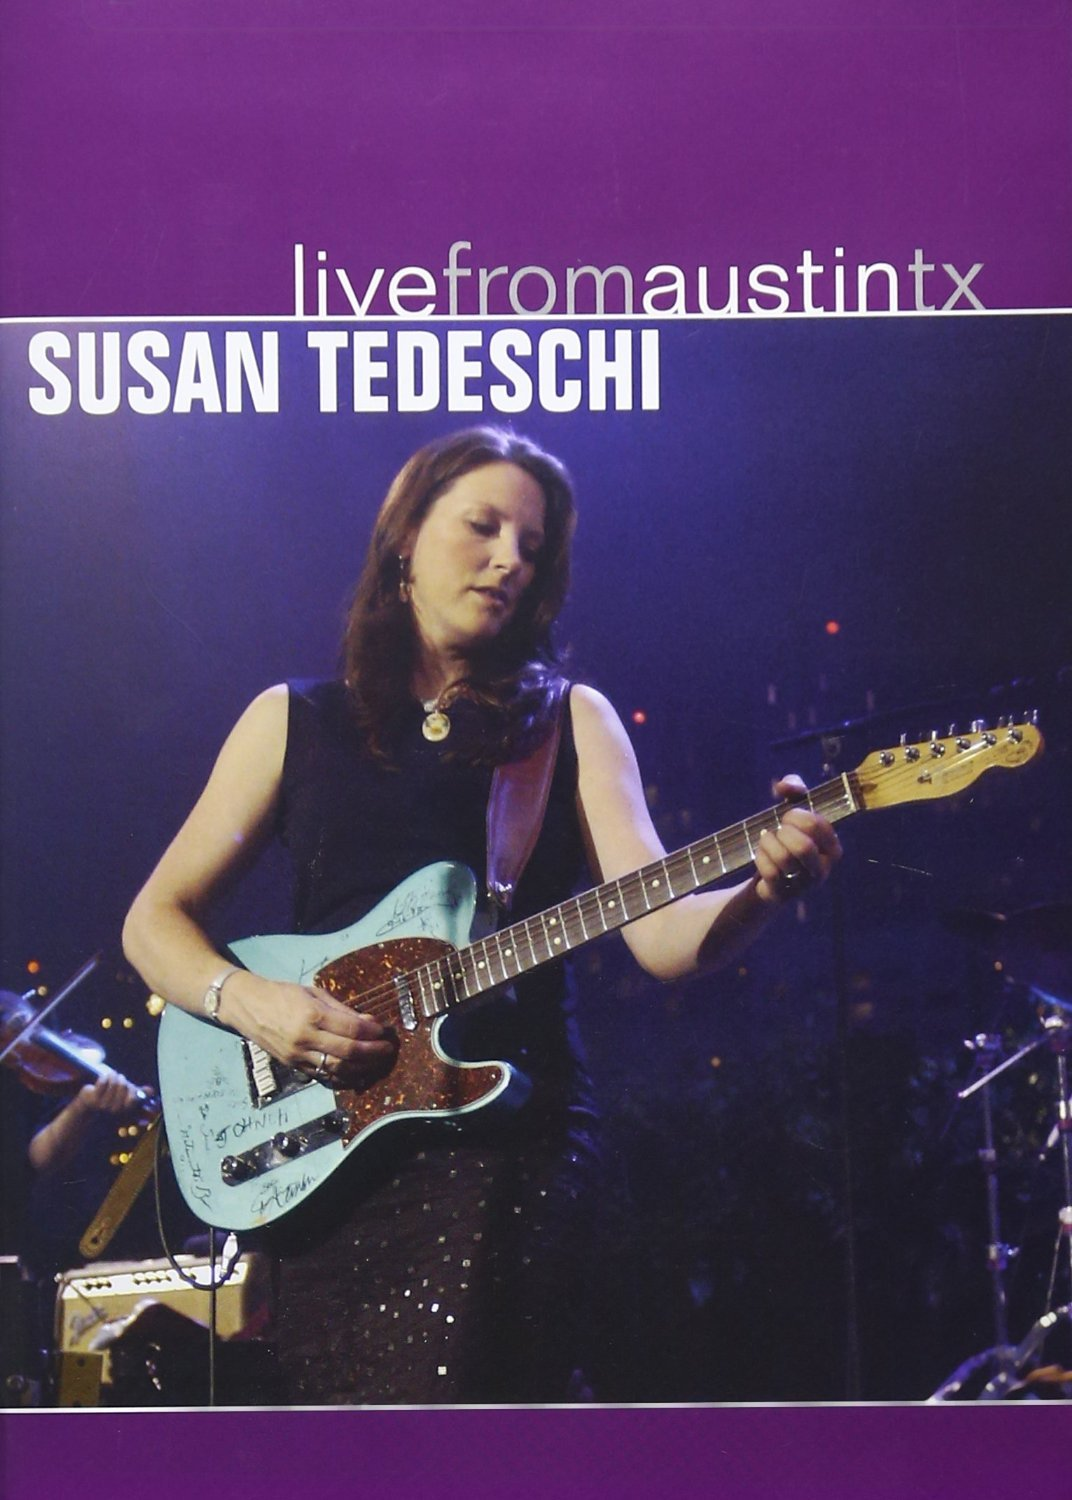 Susan Tedeschi - Live from Austin, TX by RED Distribution